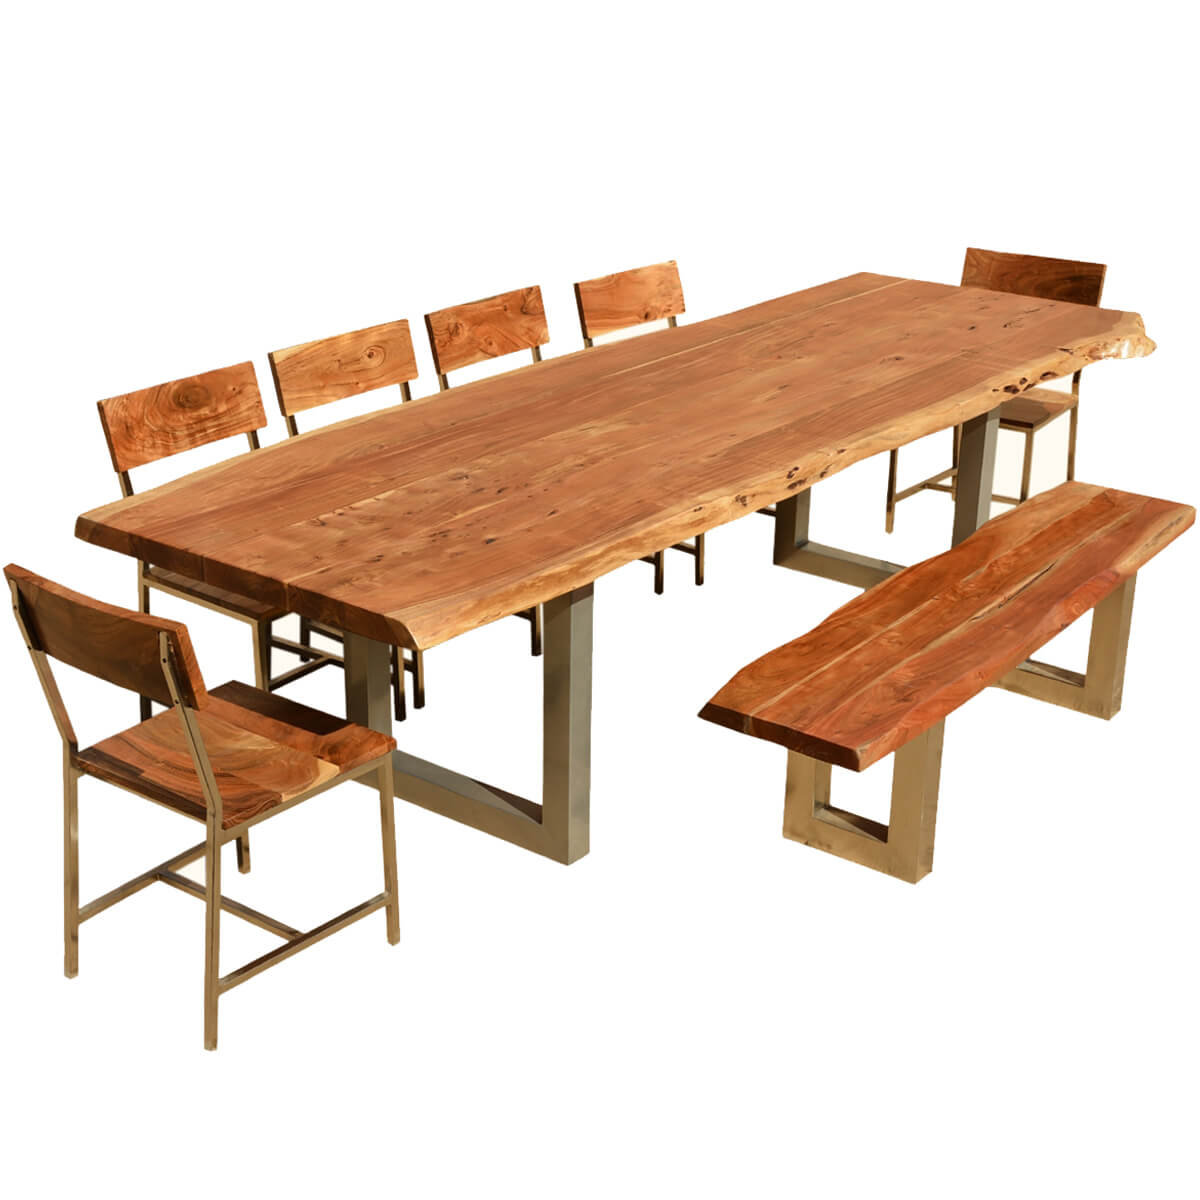 117 Live Edge Dining Table W 6 Chairs Bench Acacia